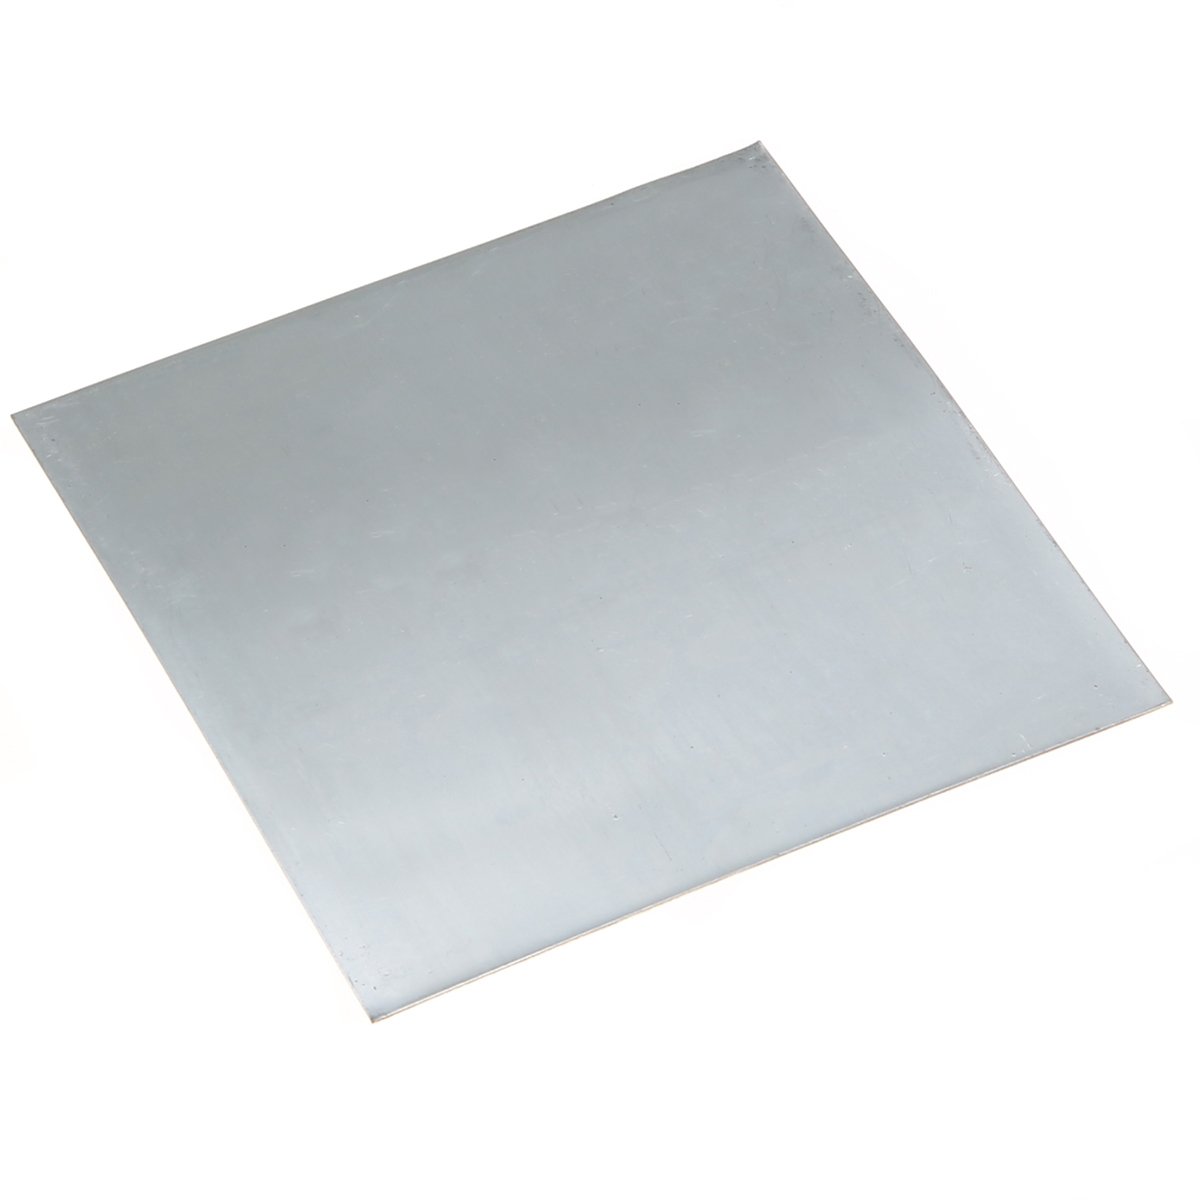 1Pcs  Zinc Plate 99.9% Pure Zinc Zn Sheet Plate 100mmx100mmx0.2mm For Science Lab Accessories(China)